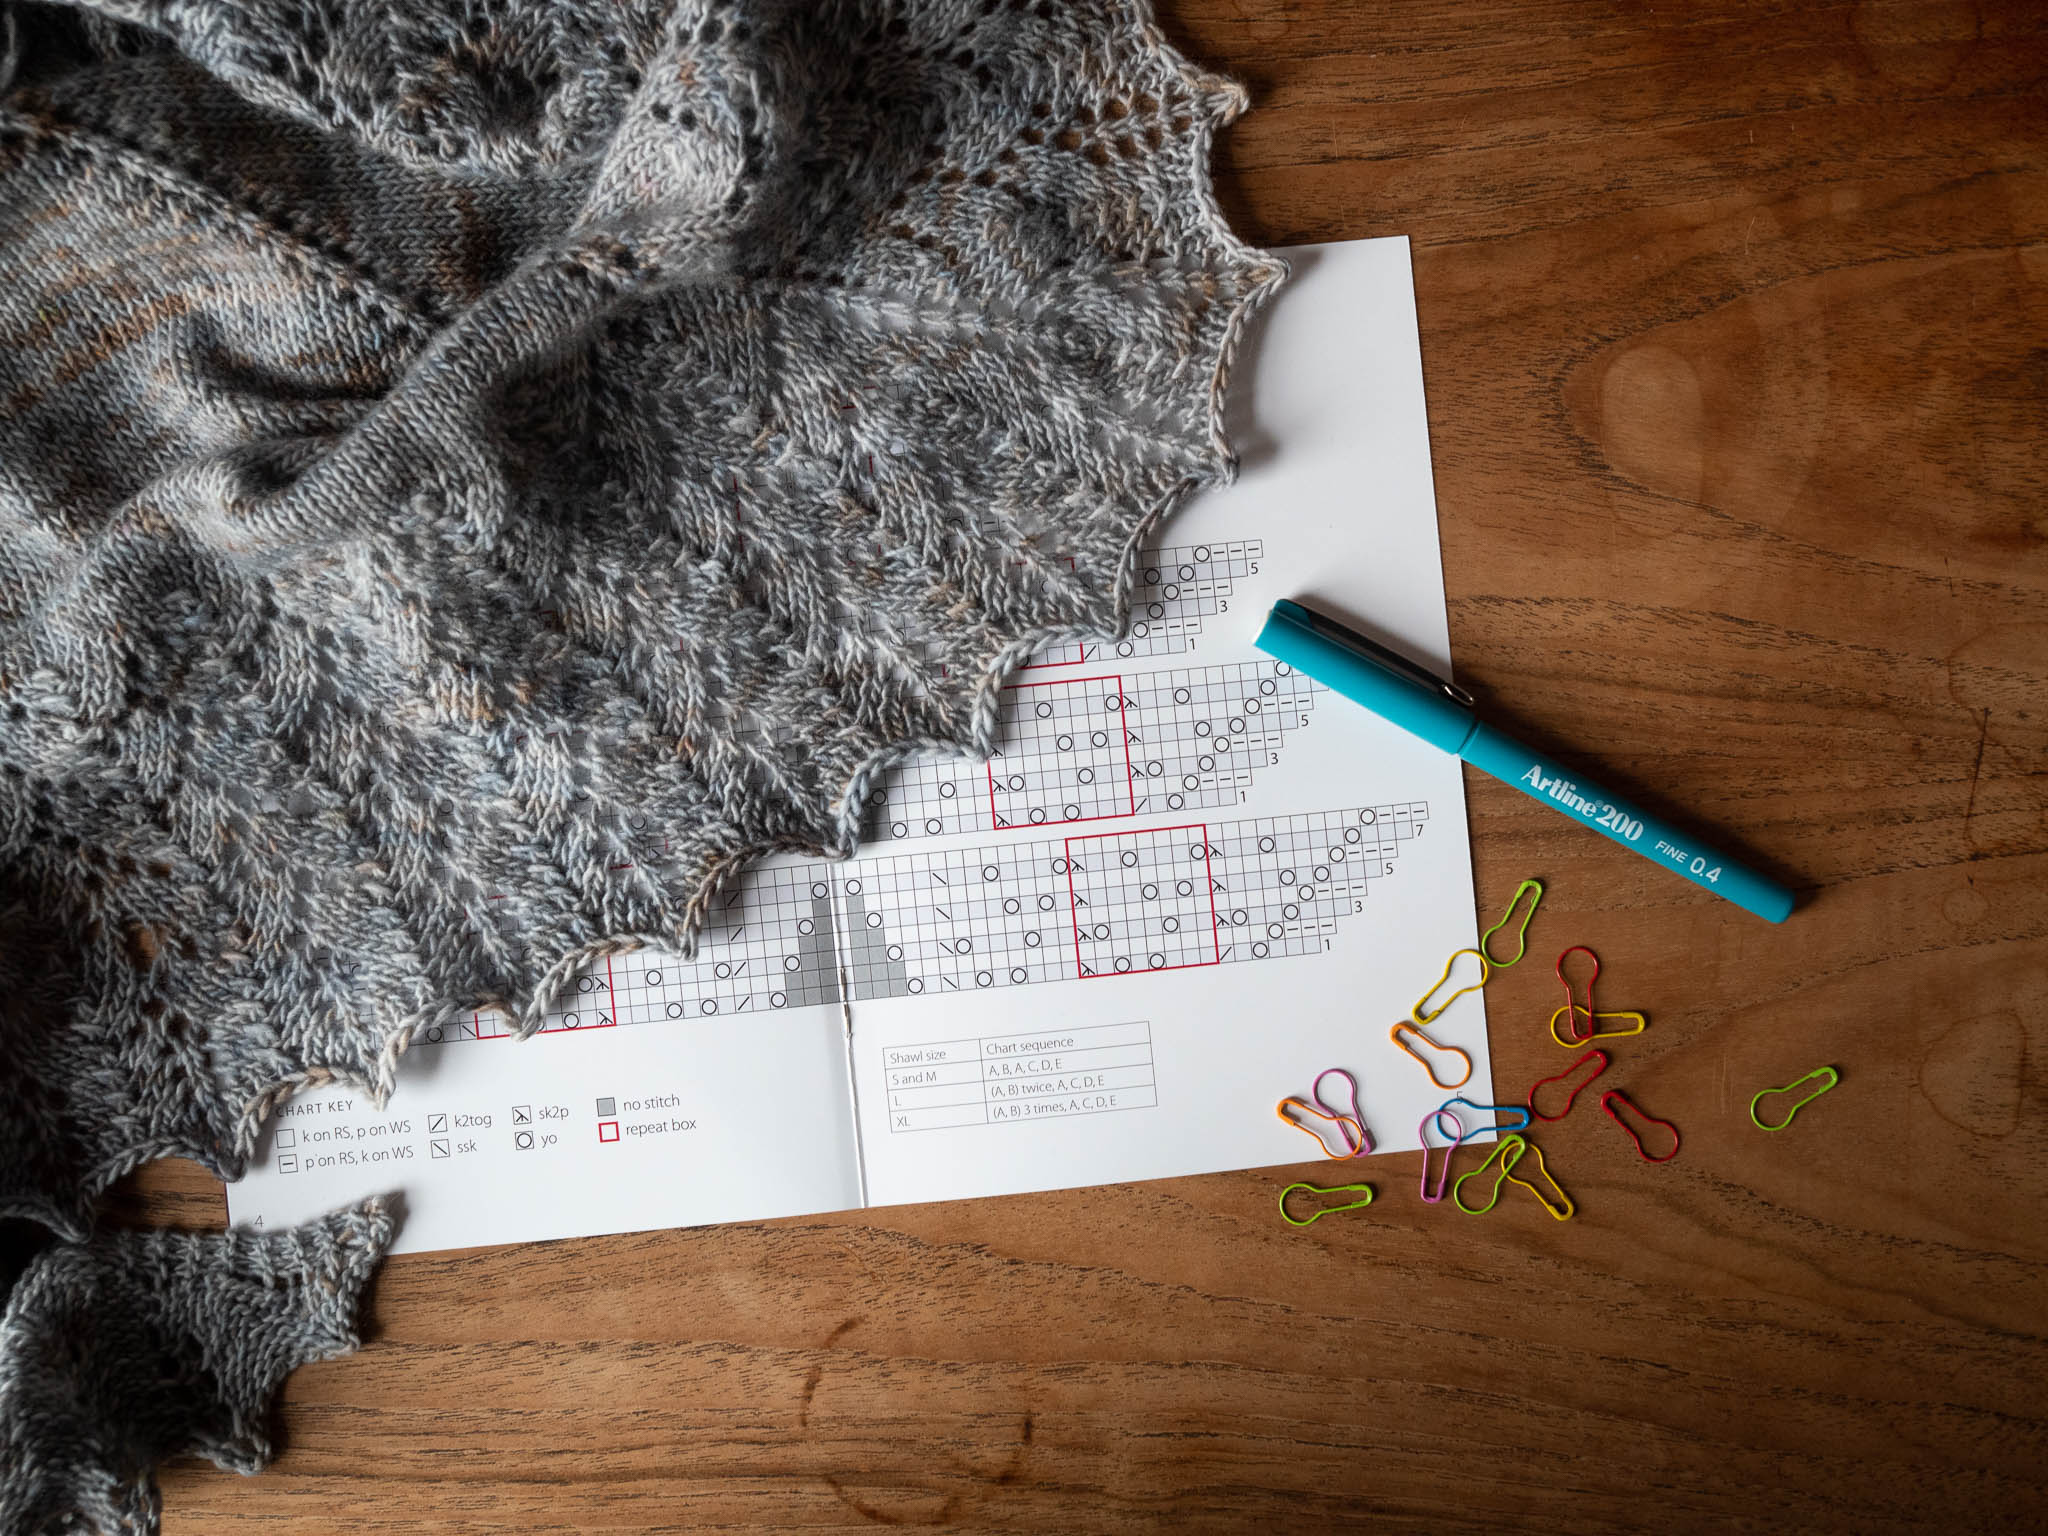 A wooden table with the Ishbel pattern, Ishbel shawl, stitch markers and a pen.